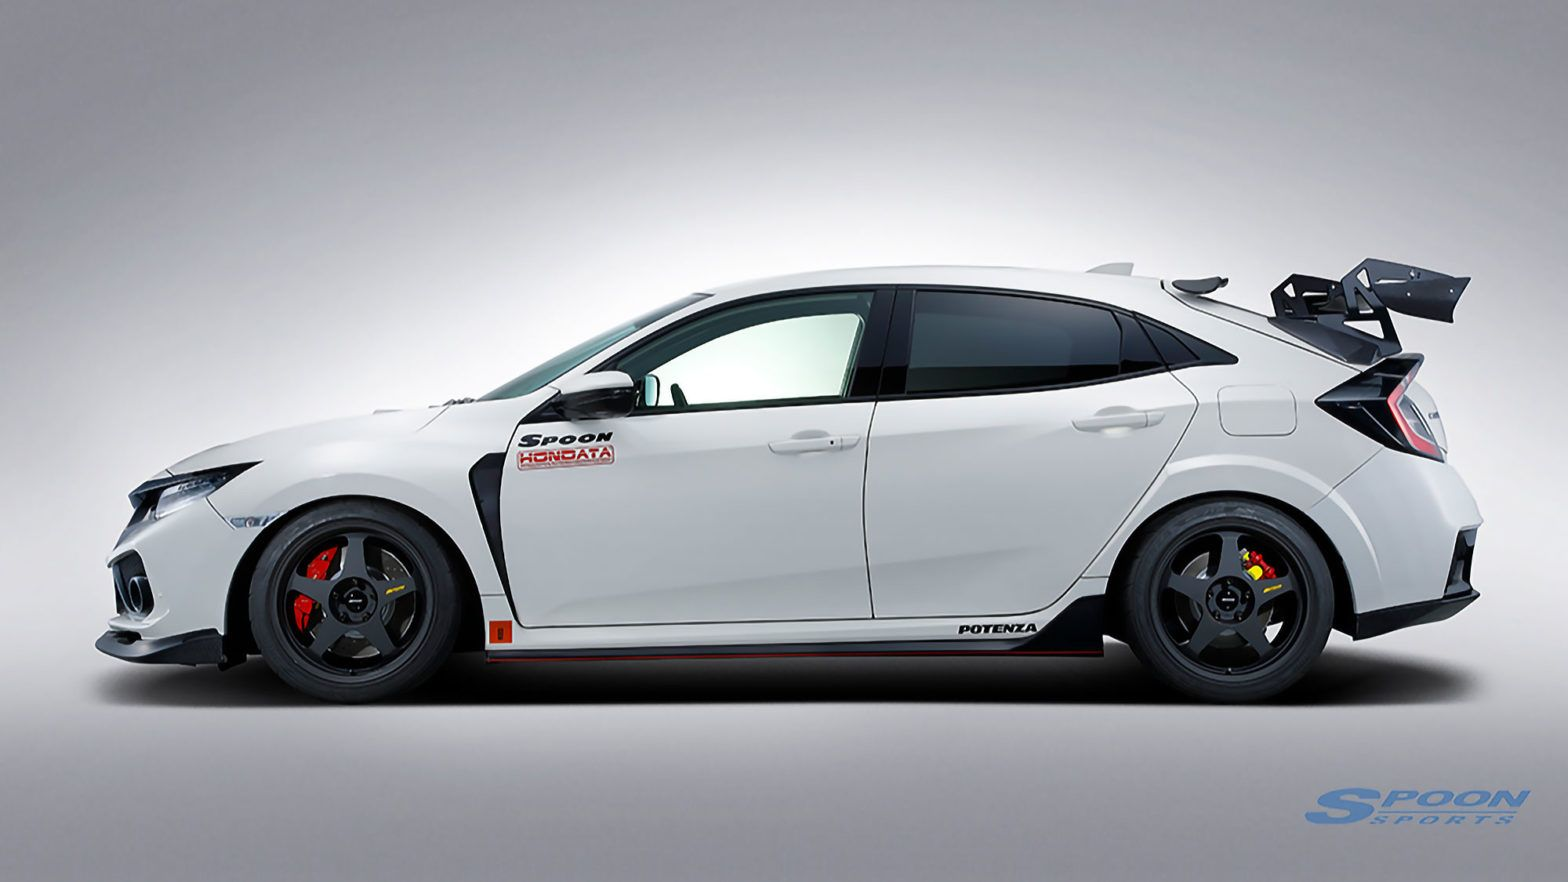 Spoon Sports Is Now Offering Fk8 Honda Civic The Complete Suite Of Upgrades Shouts Honda Civic Honda Civic Sport Honda Civic Type R